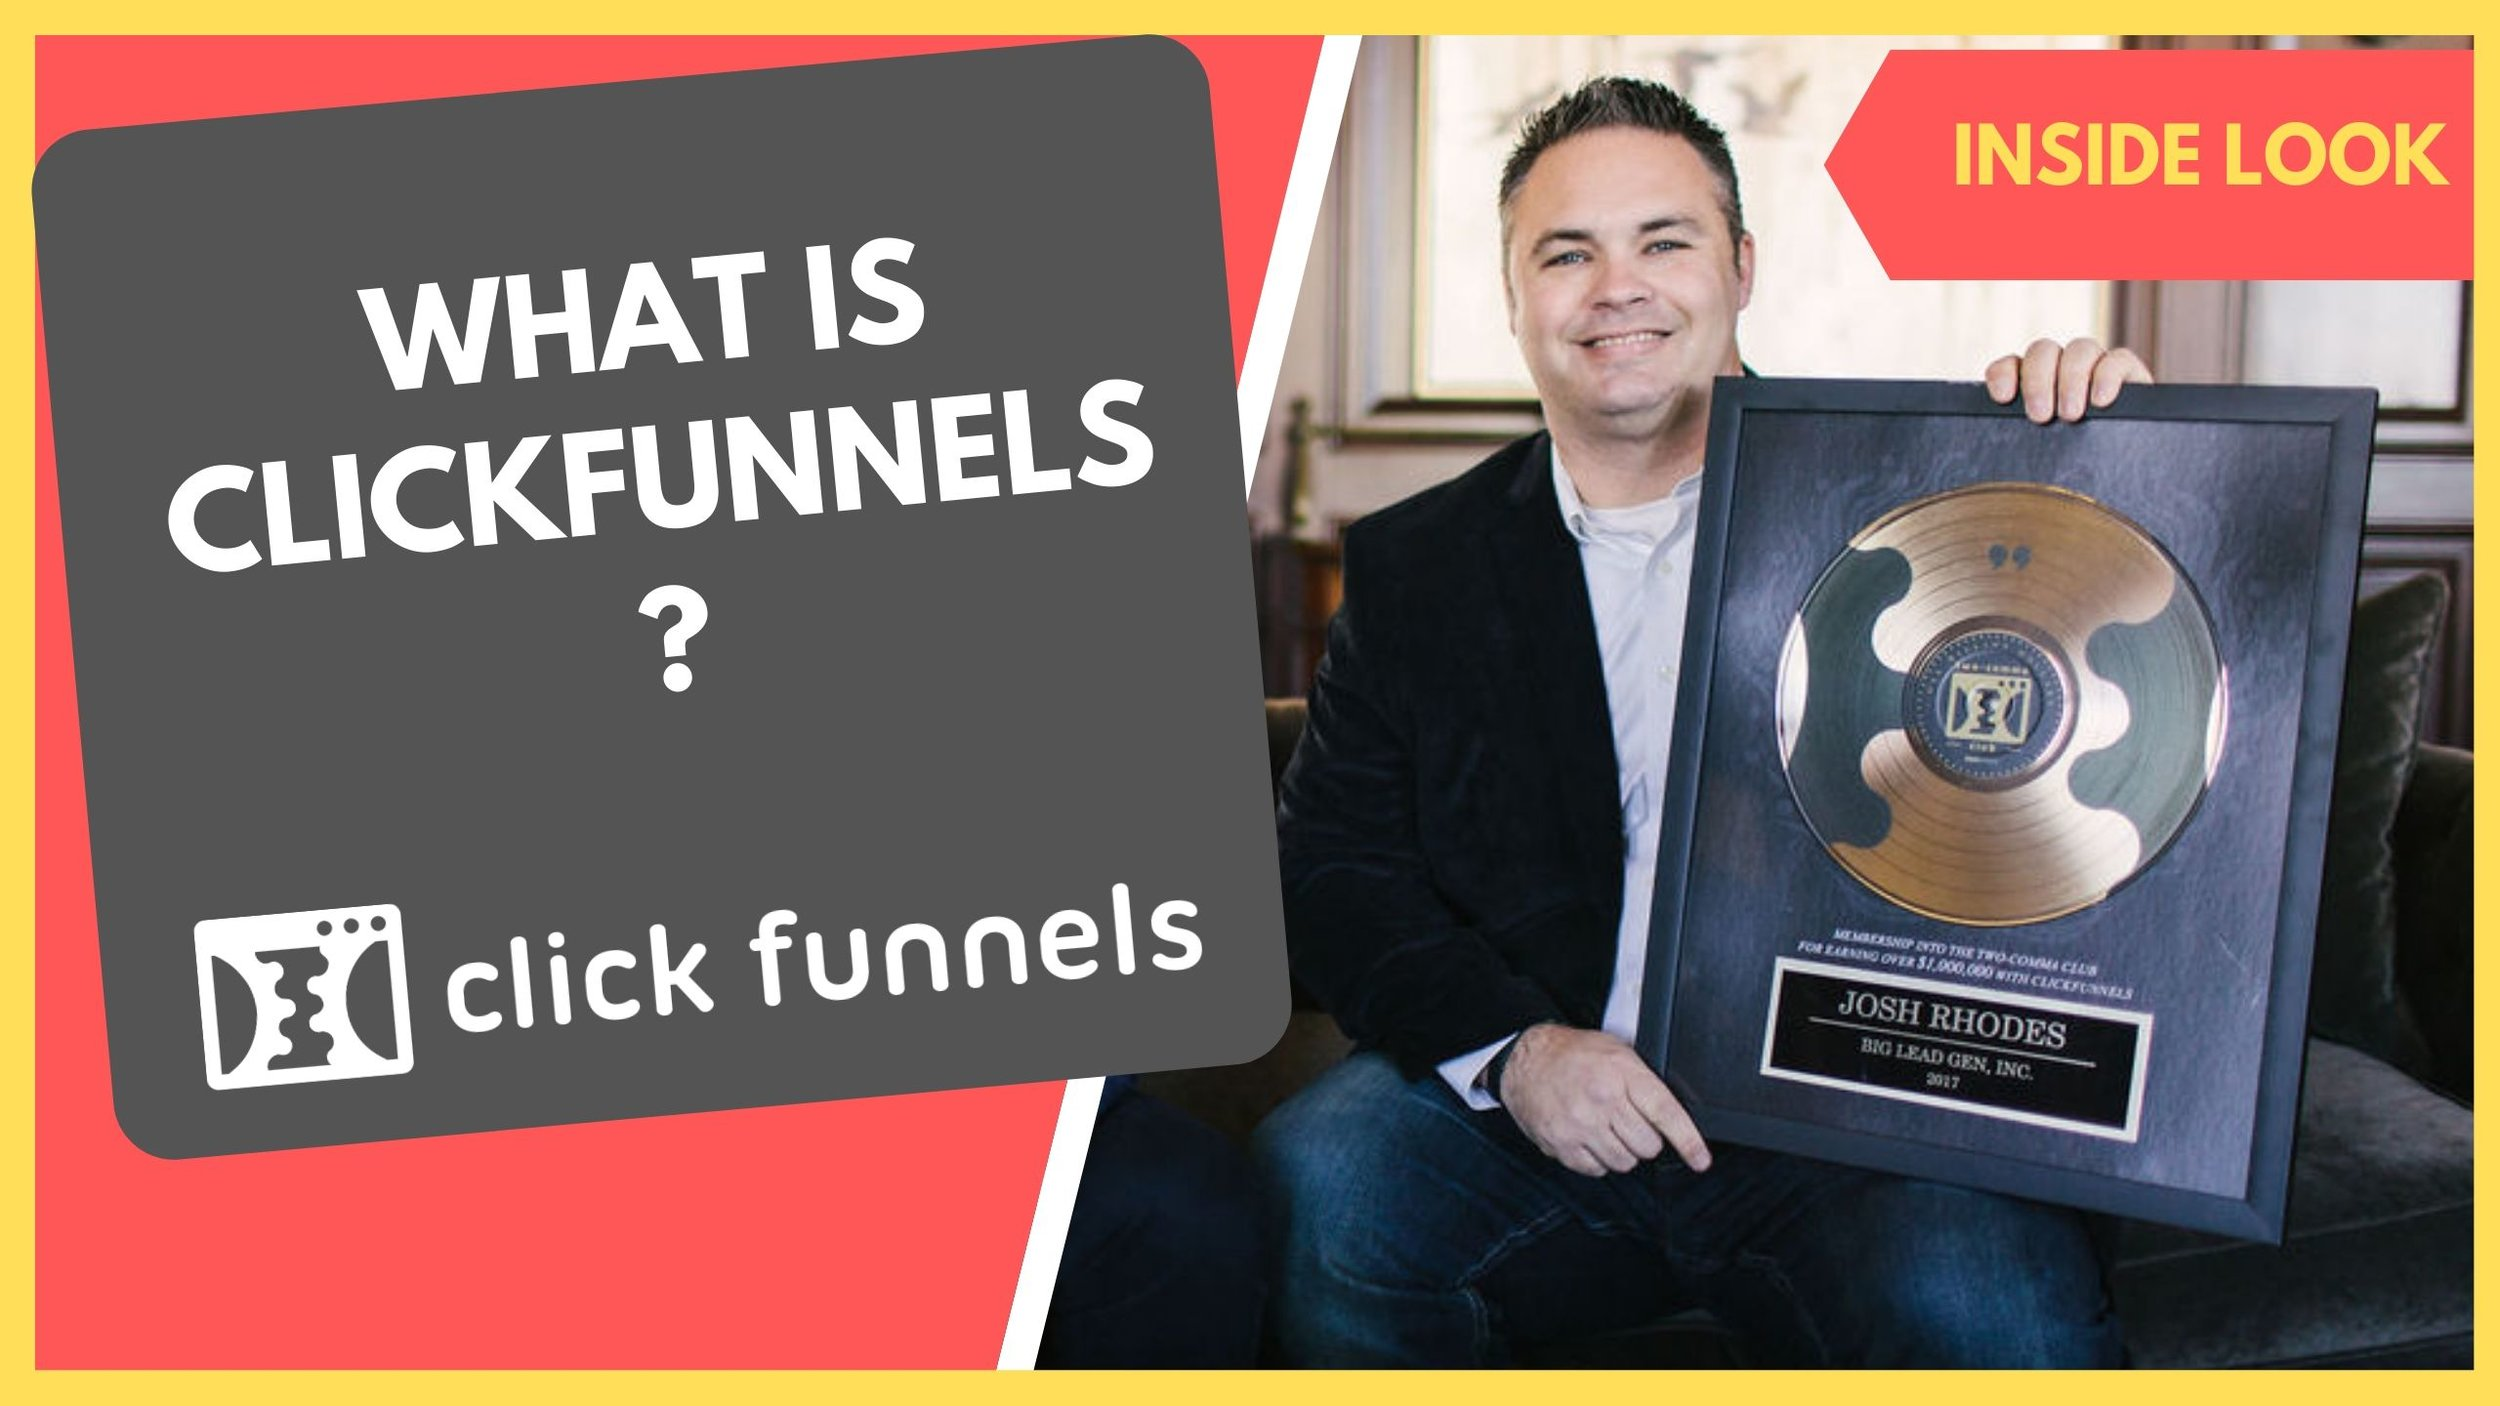 What Do I Need For A Webinar Funnel With Clickfunnels